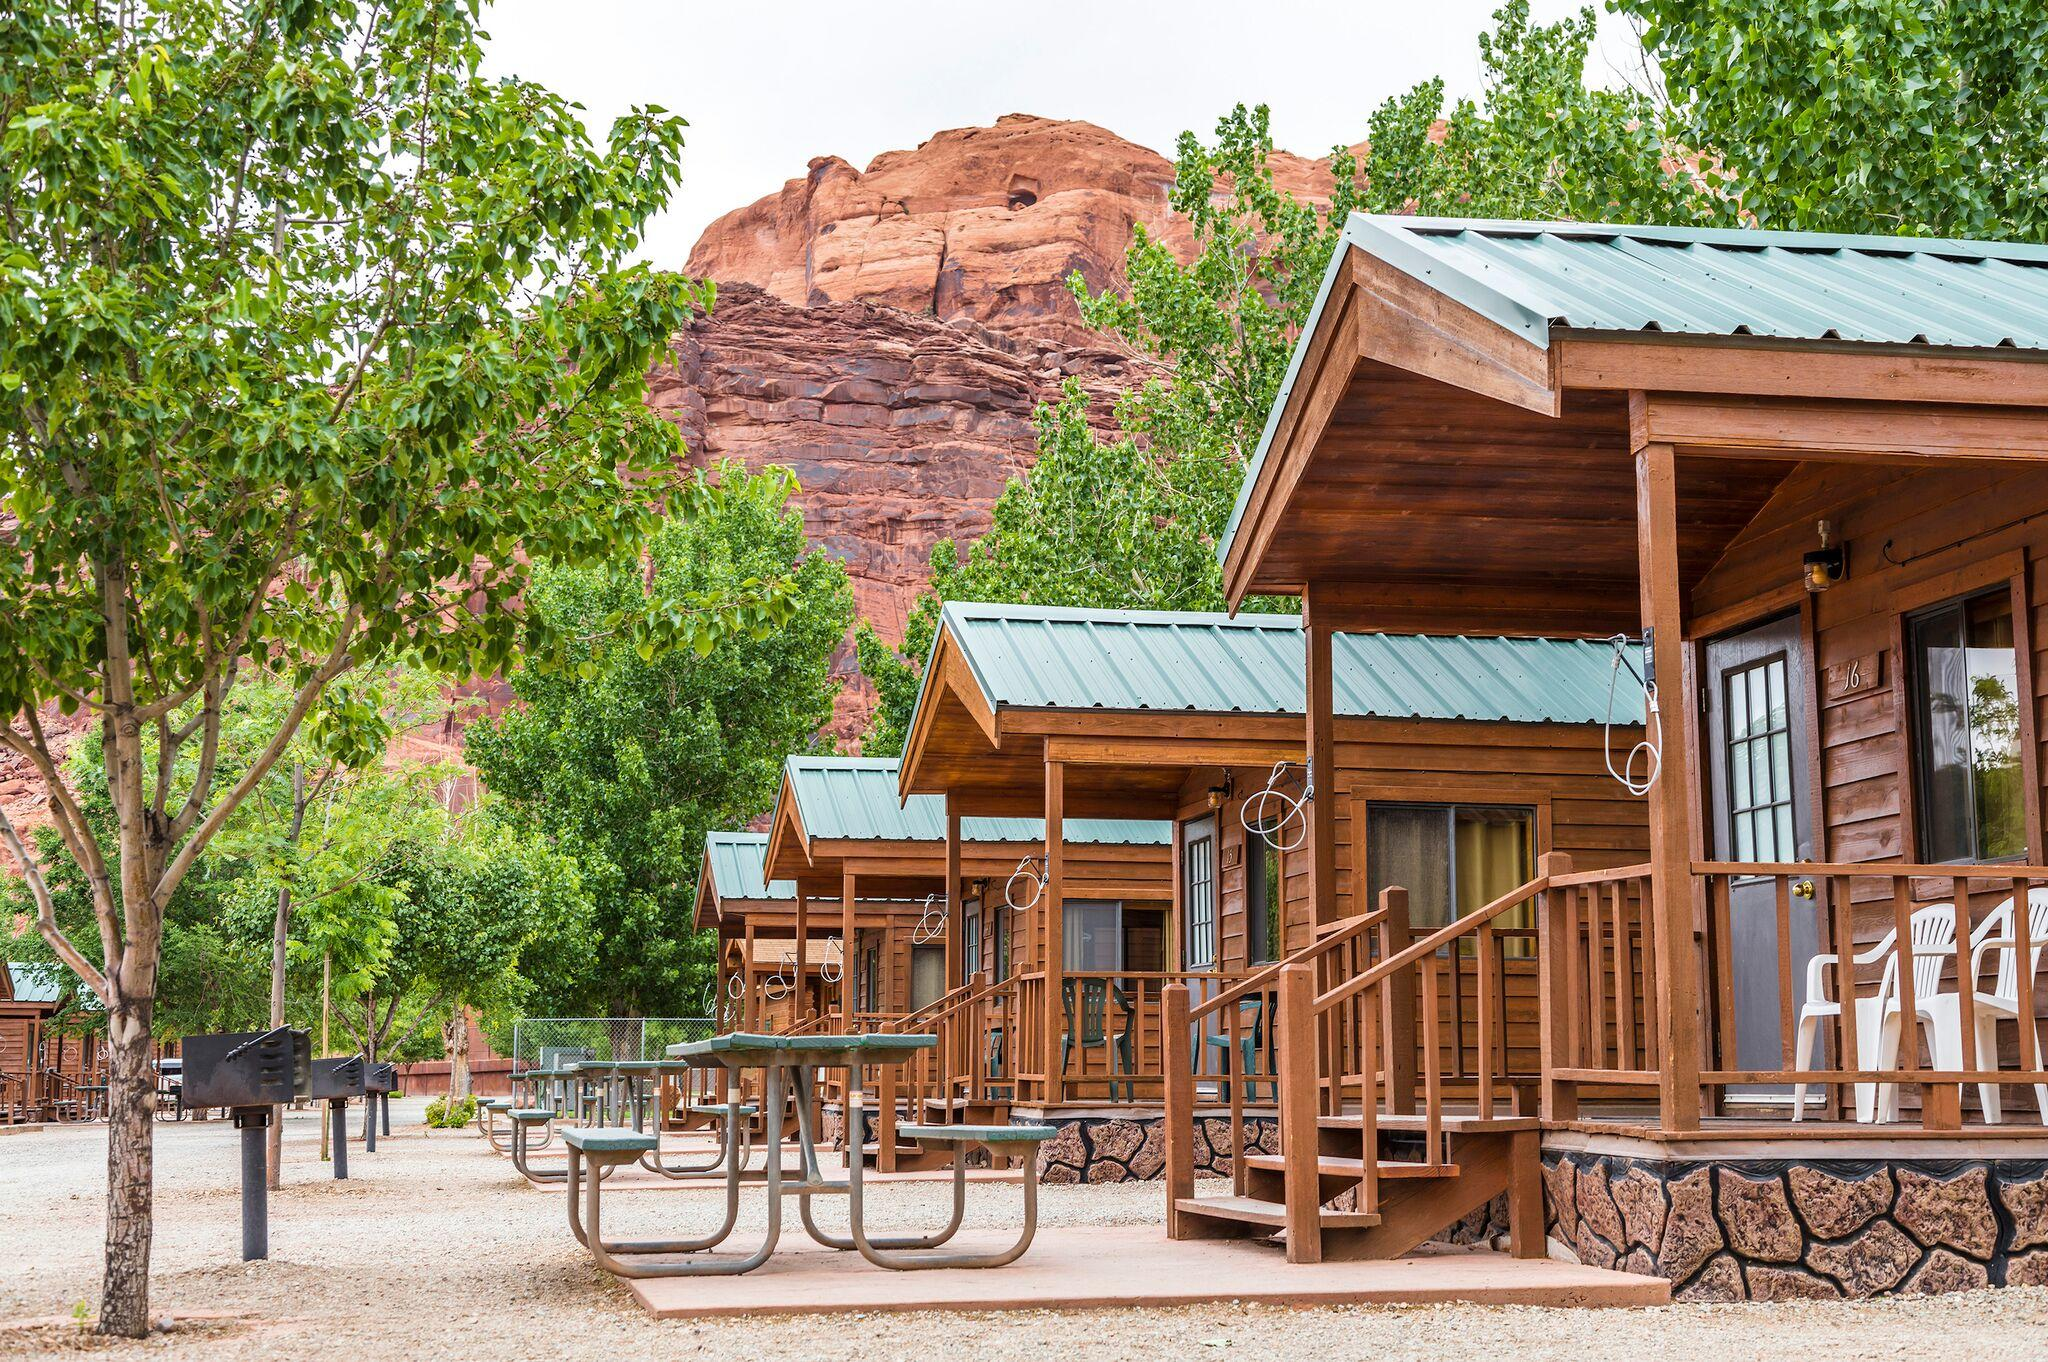 Moab Valley Rv Resort Amp Campground In Moab Ut 84532